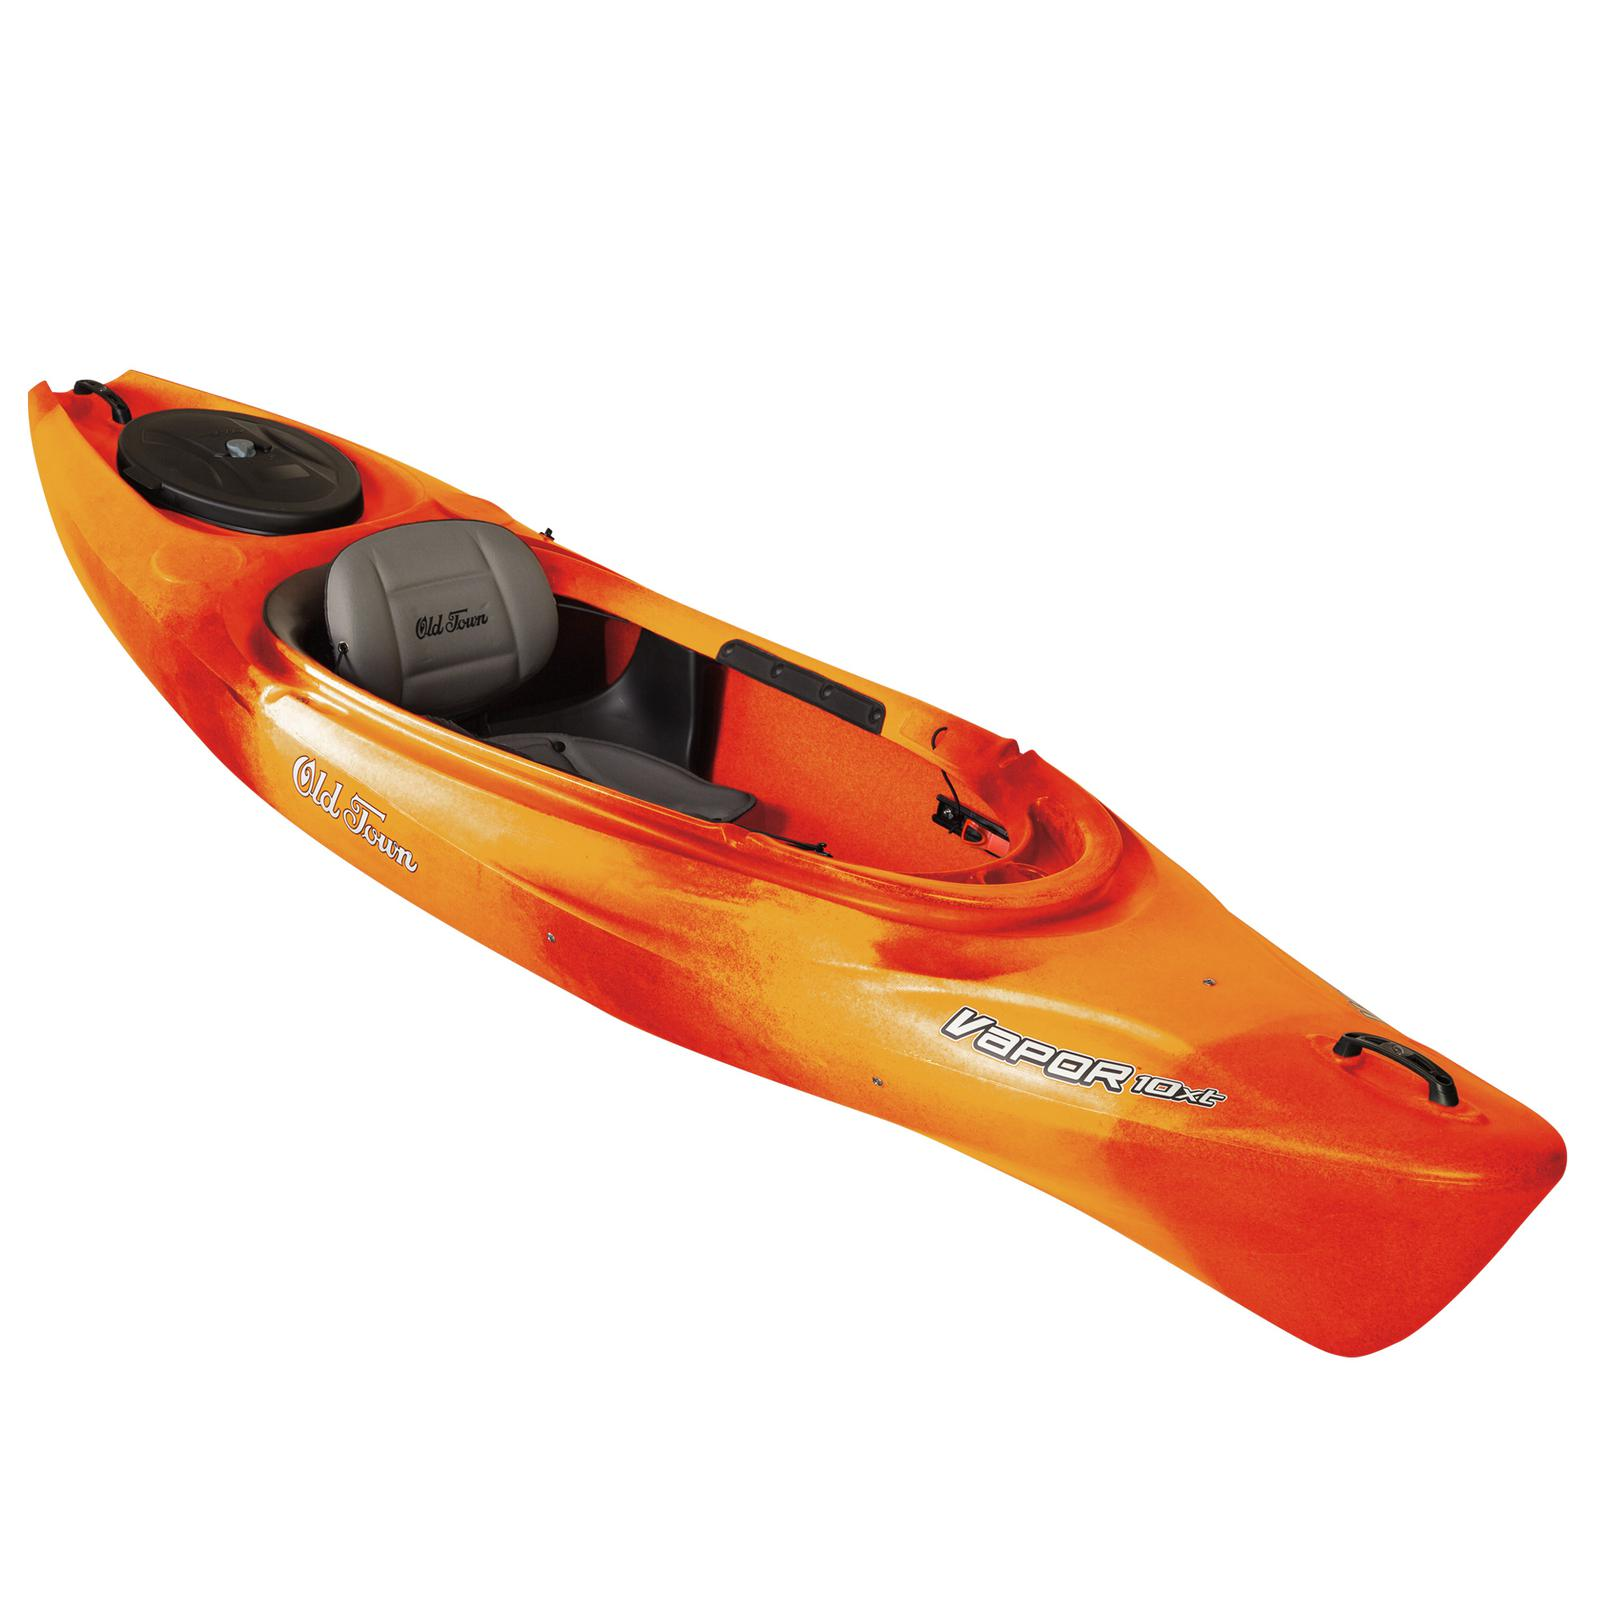 Inventory from Old Town Canoes and Kayaks Frenchie's Outdoor